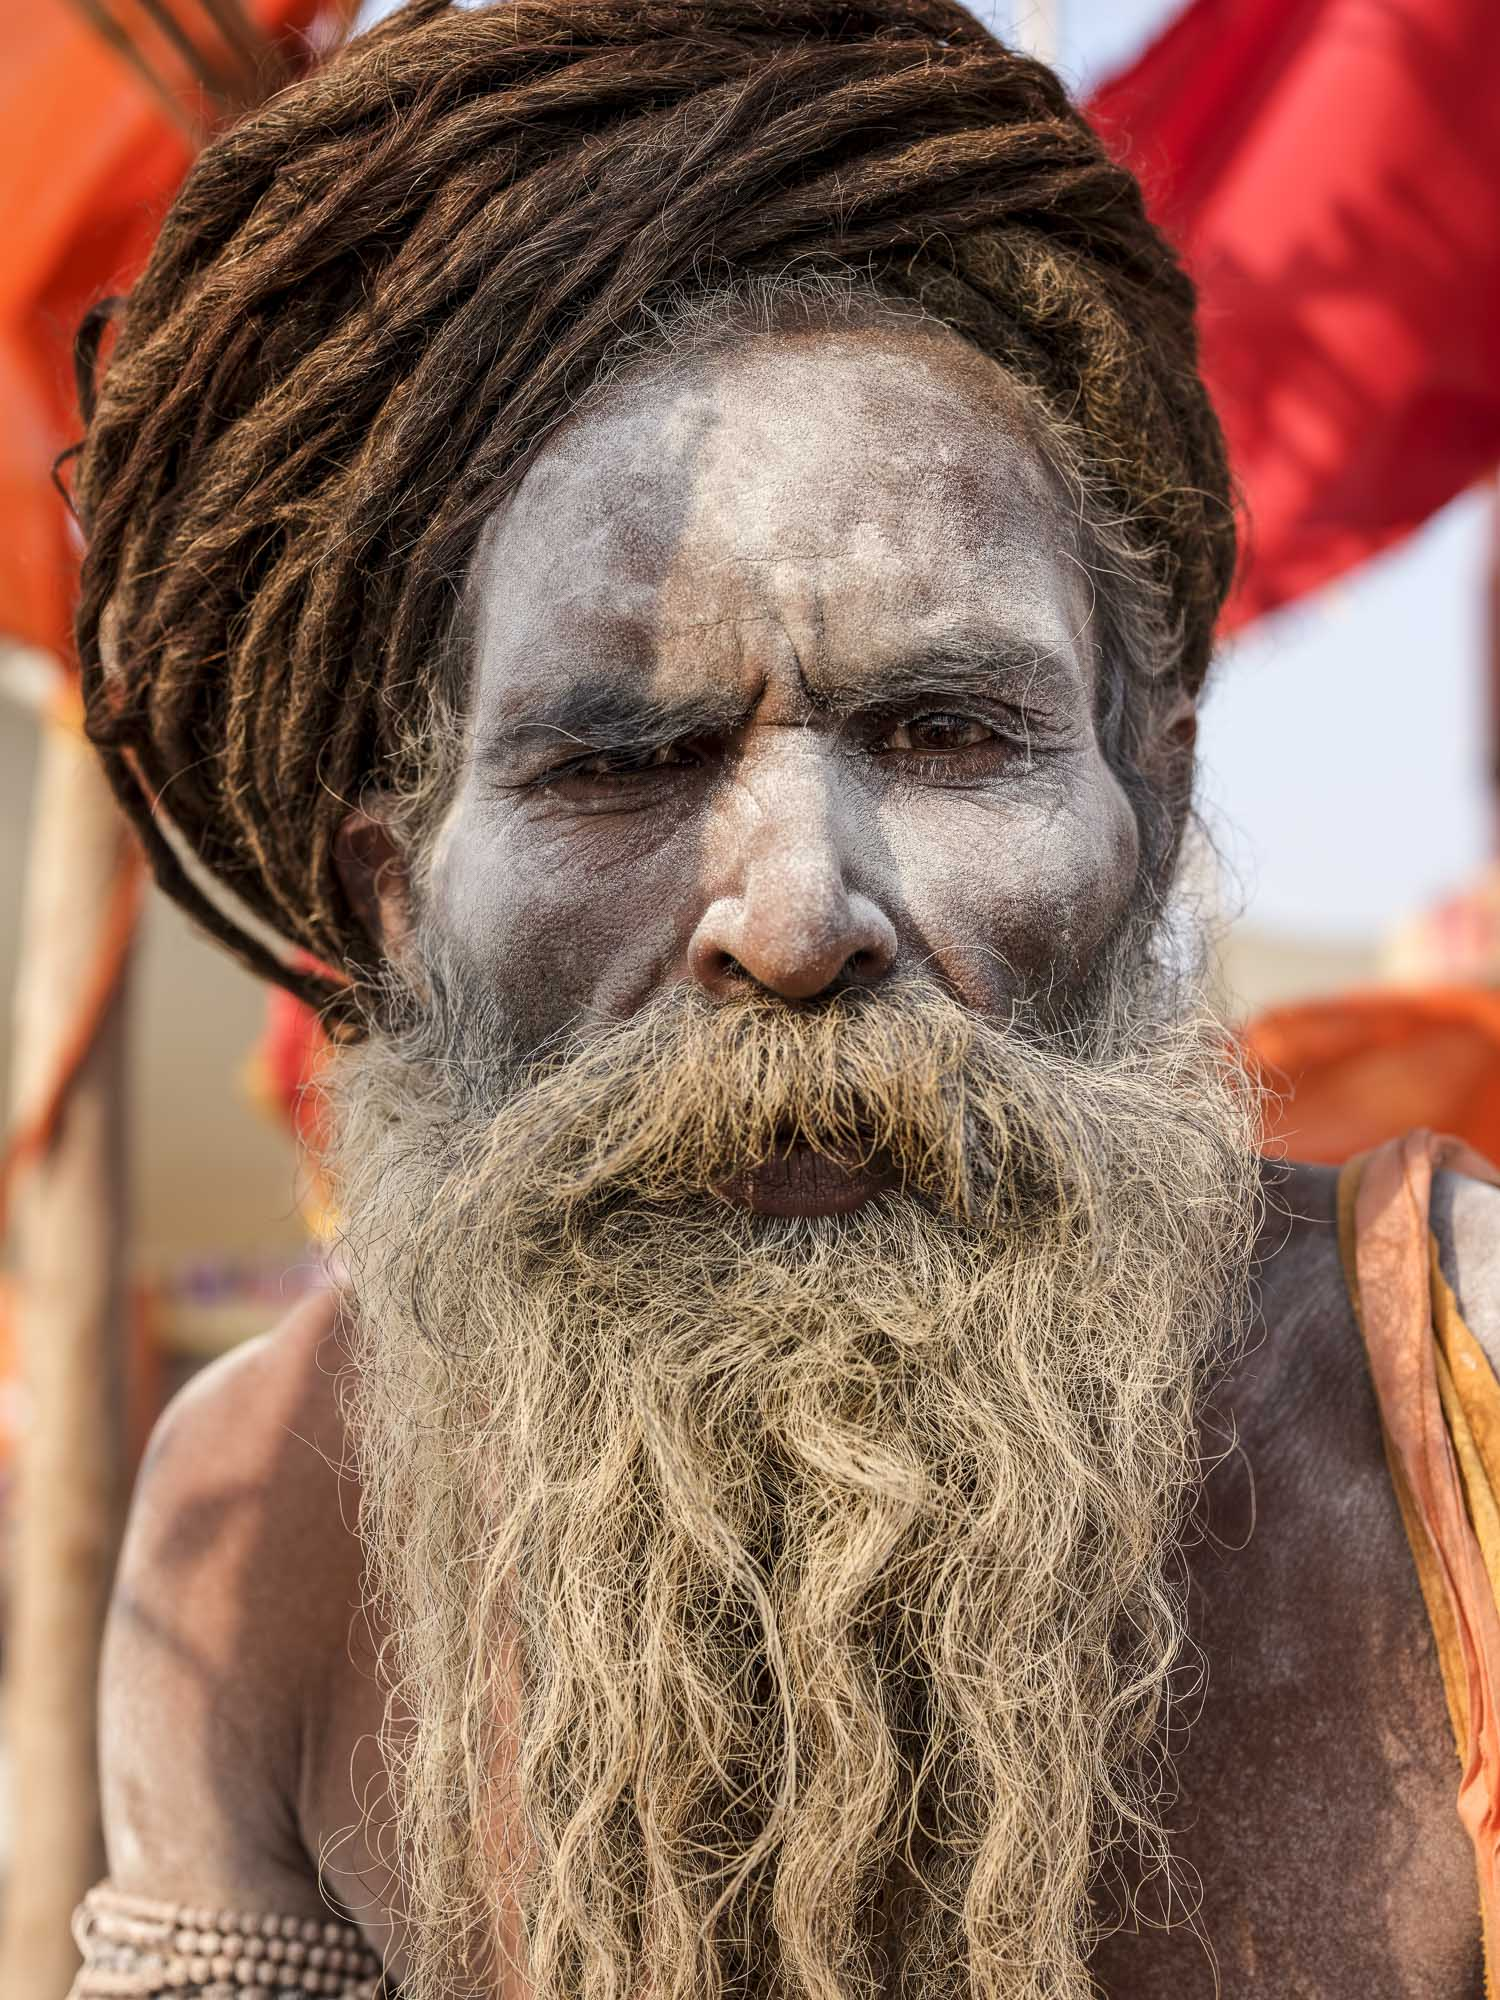 india man Kumbh mela Commercial Editorial Portraiture Documentary Photographer fujifilm Director Singapore Jose Jeuland photography fashion